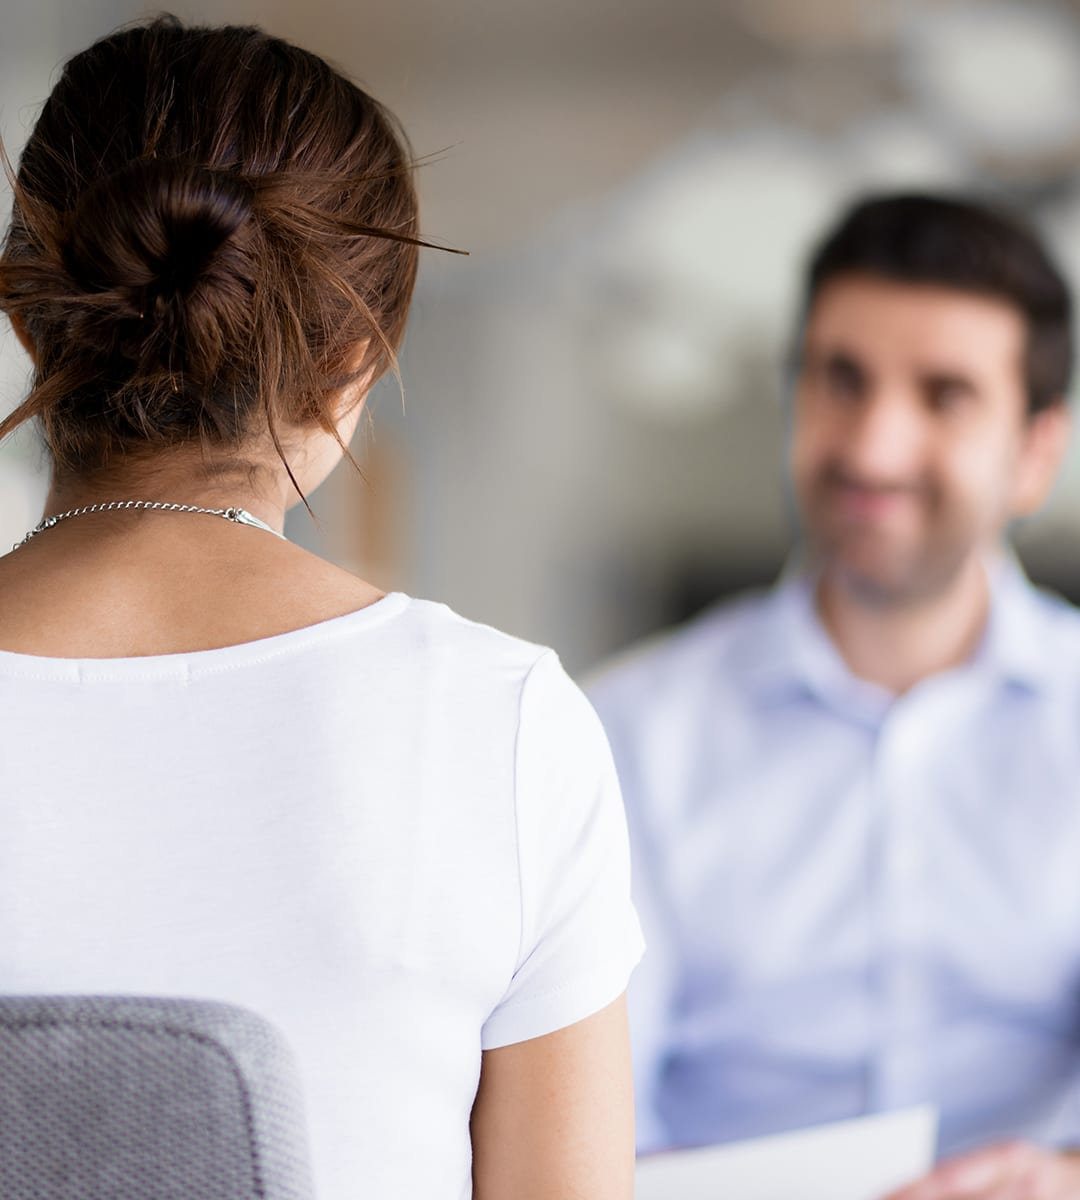 A mock job interview as part of Towards Work